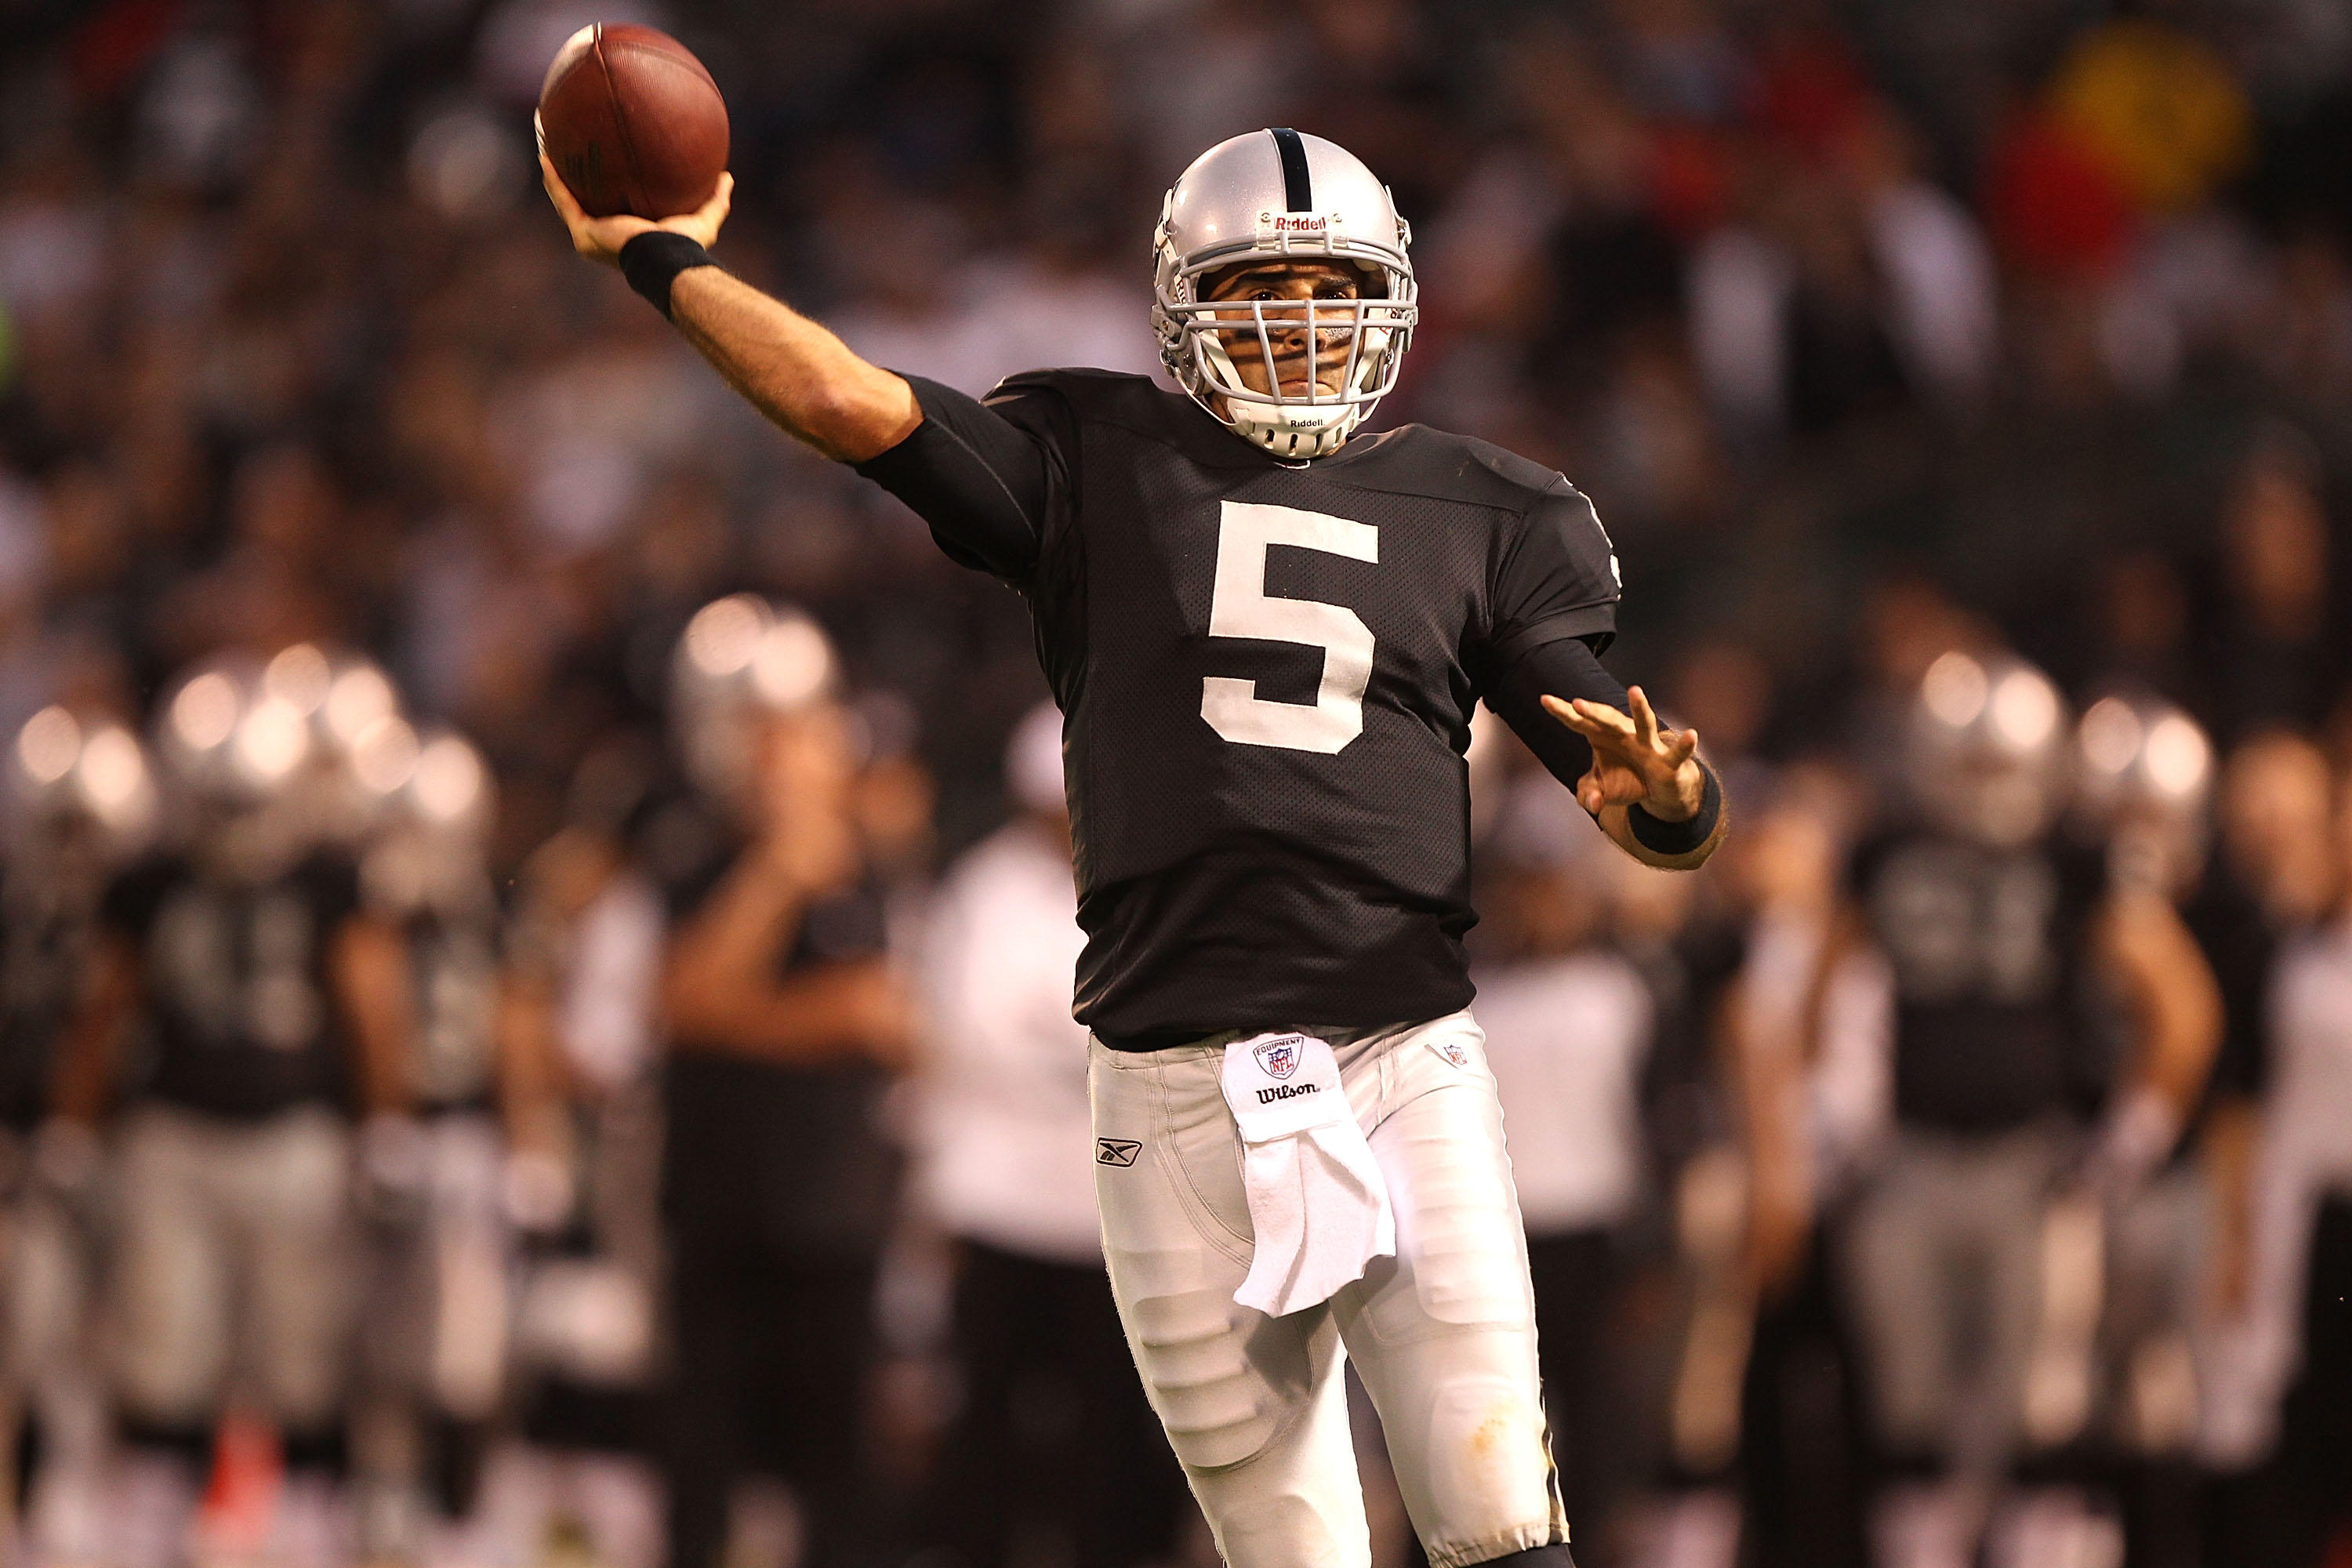 OAKLAND, CA - SEPTEMBER 02:  Bruce Gradkowski #11 of the Oakland Raiders passes against the Seattle Seahawks during an NFL preseason game at Oakland-Alameda County Coliseum on September 2, 2010 in Oakland, California.  (Photo by Jed Jacobsohn/Getty Images